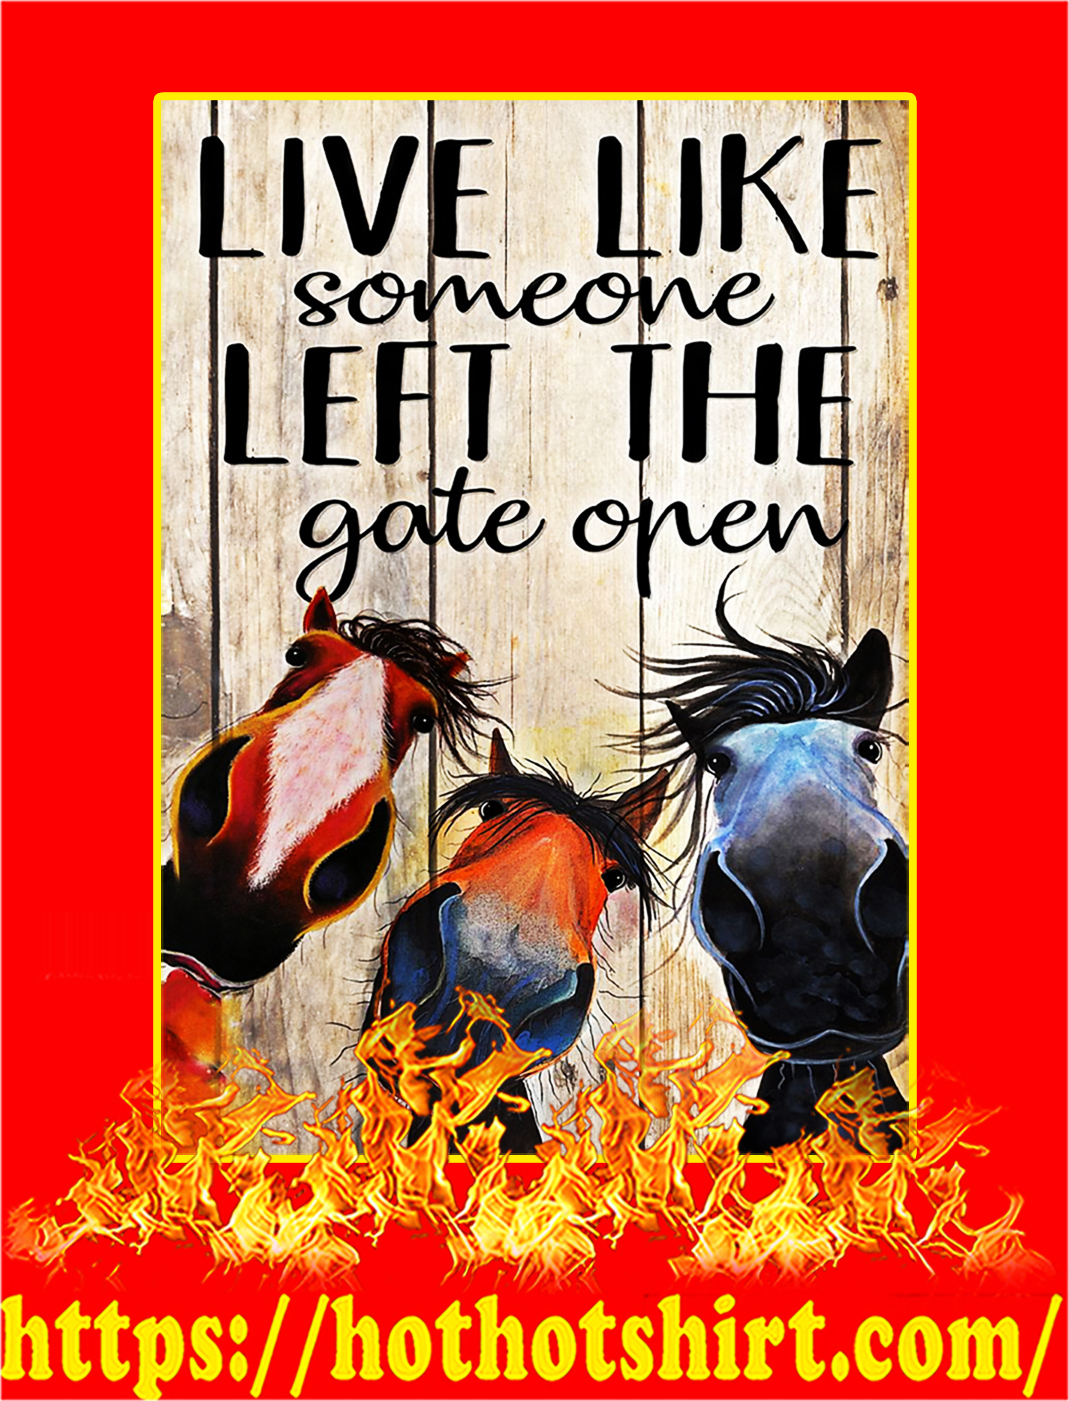 Horse Live Like Someone Left The Gate Open Poster - A3